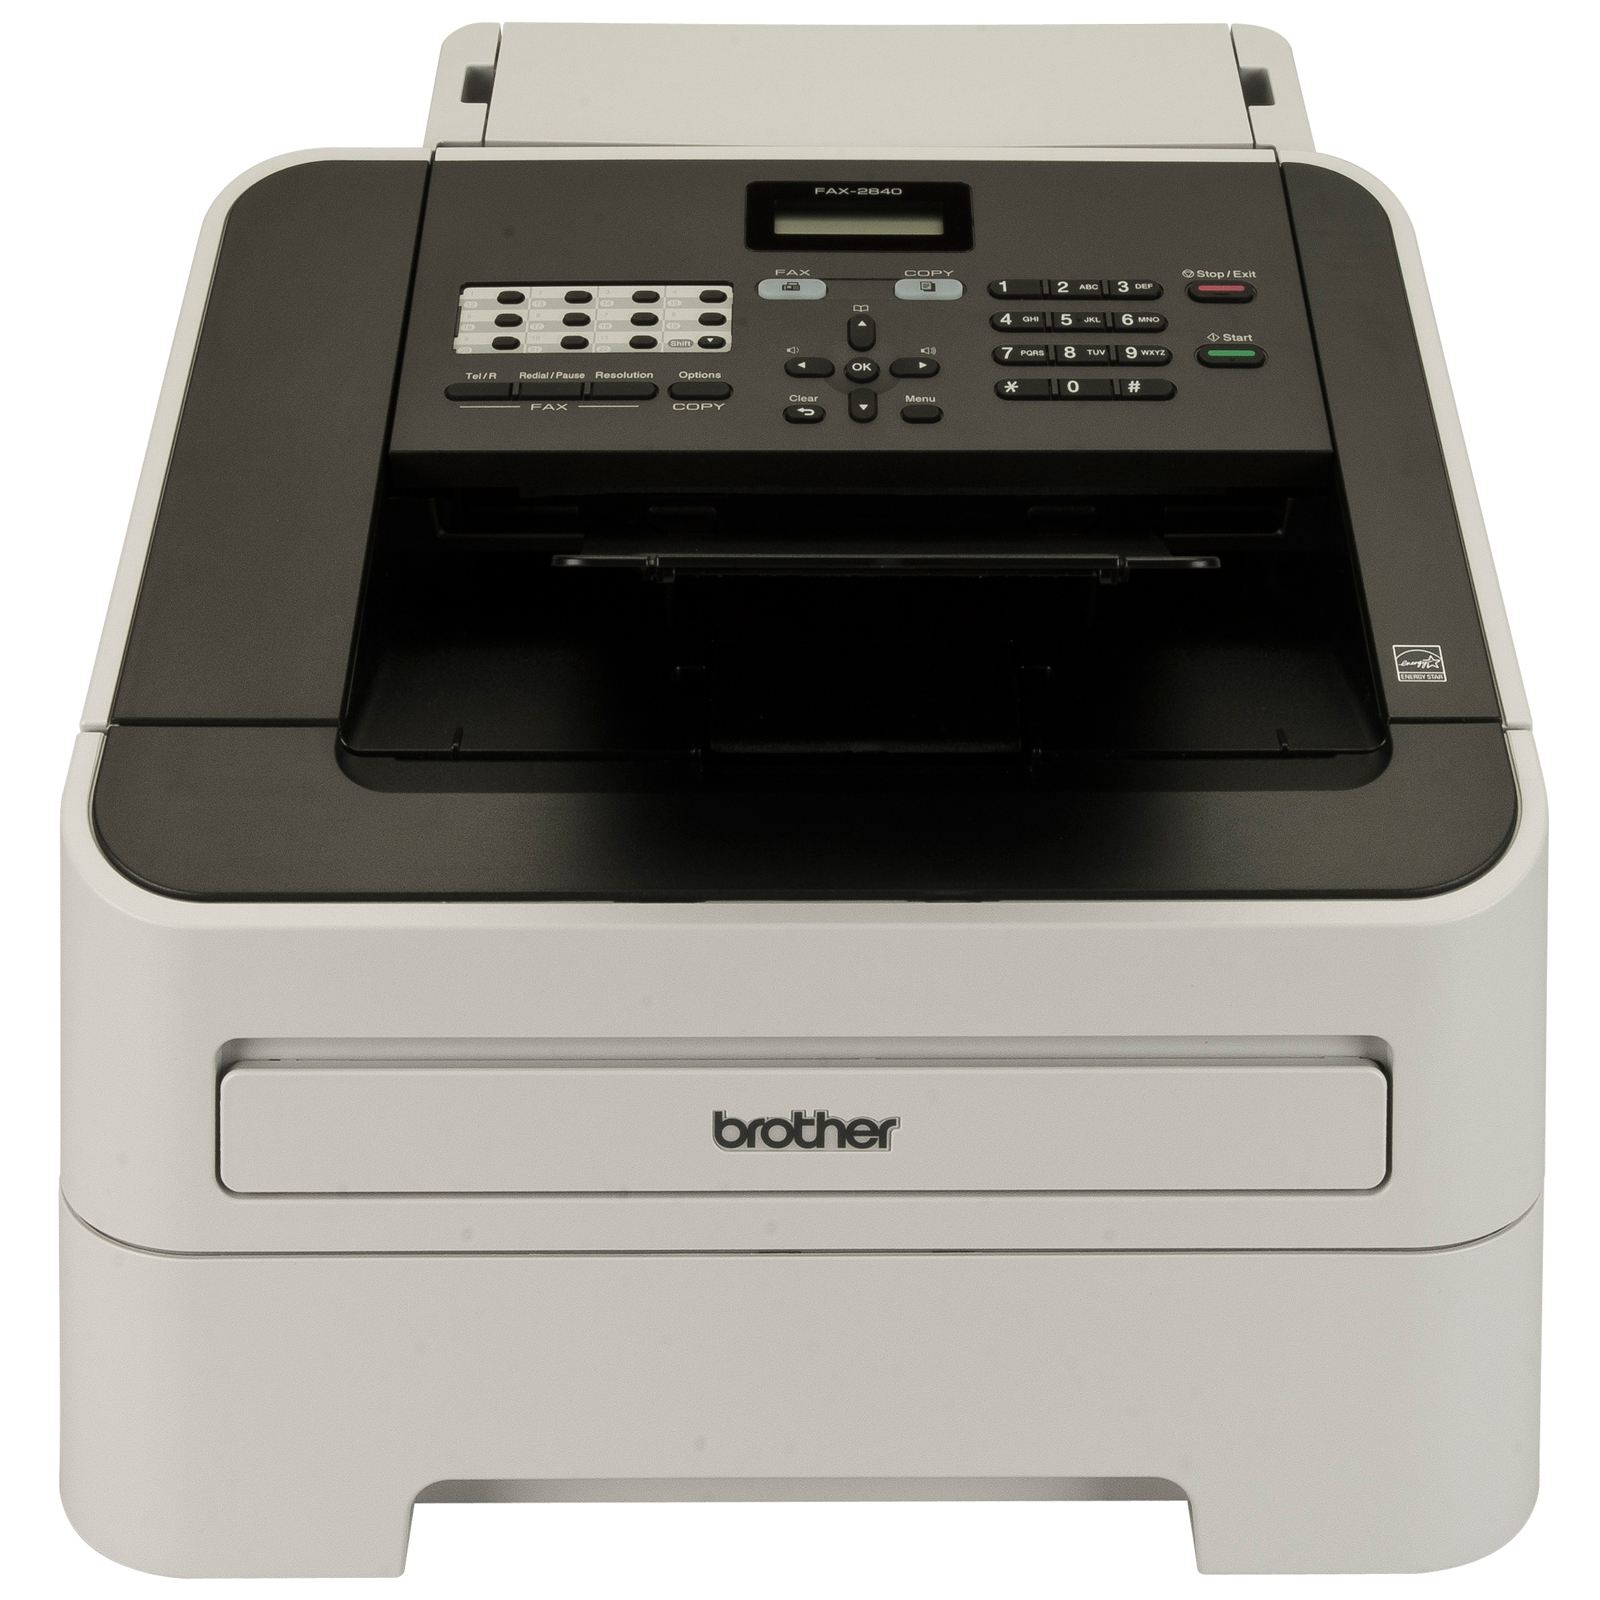 Brother Fax-2840 Laser Fax Fax2840zu1 - NA01